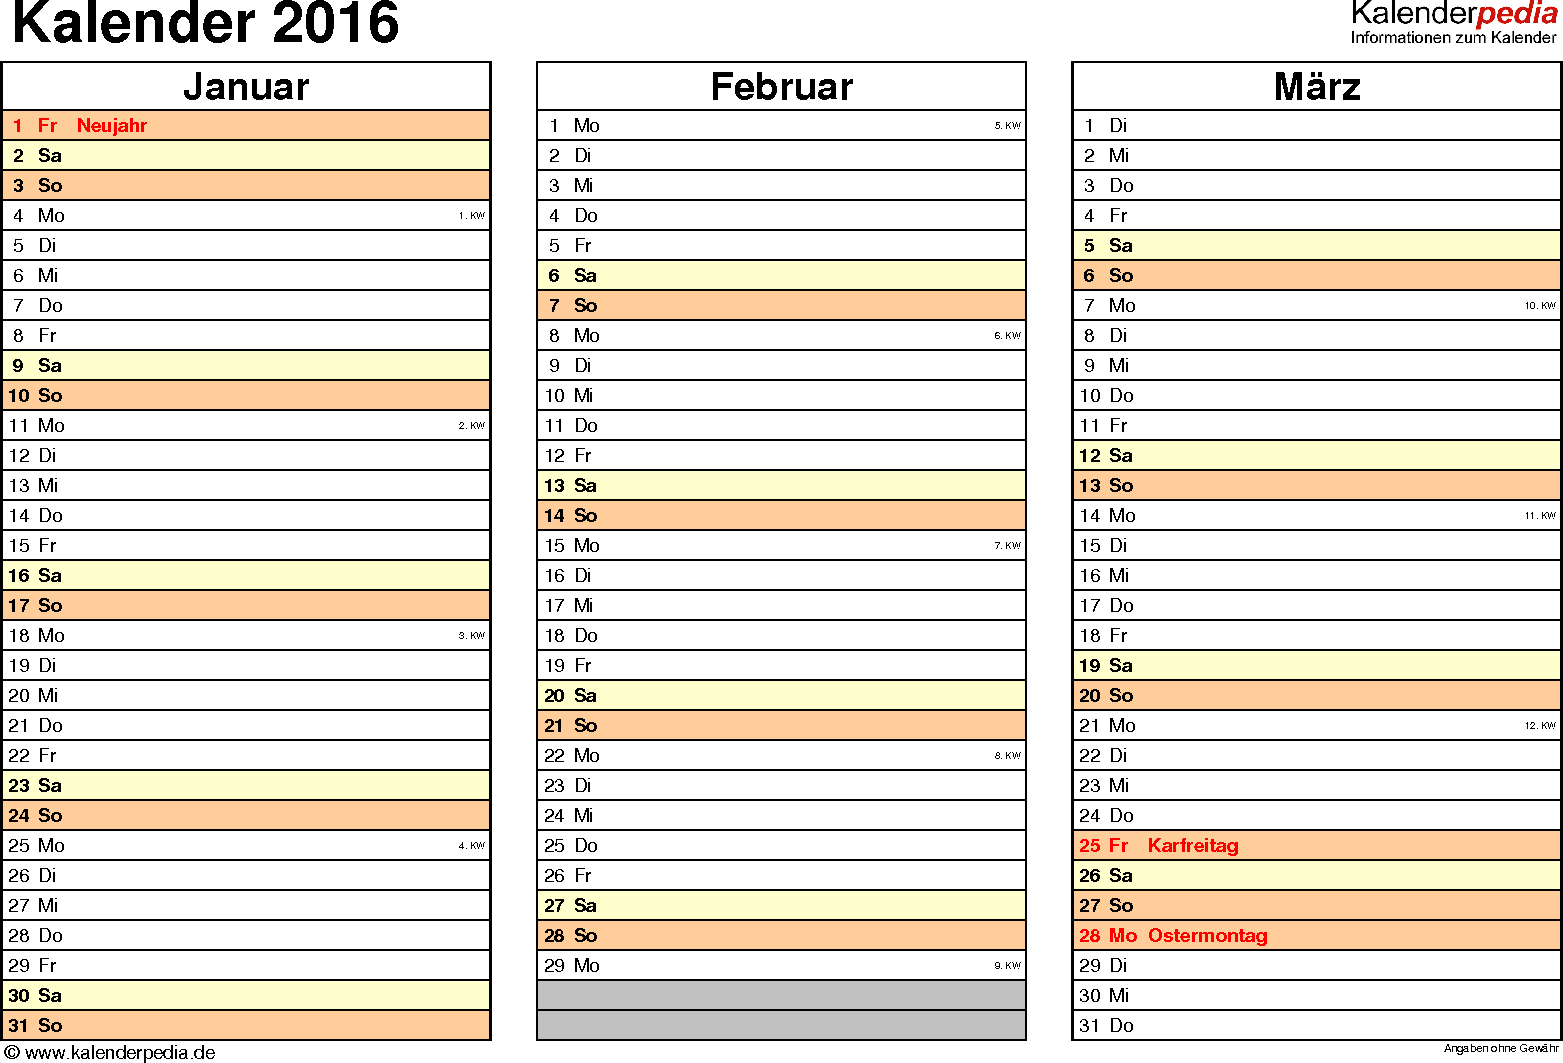 kalender 2016 in excel zum ausdrucken 16 vorlagen. Black Bedroom Furniture Sets. Home Design Ideas